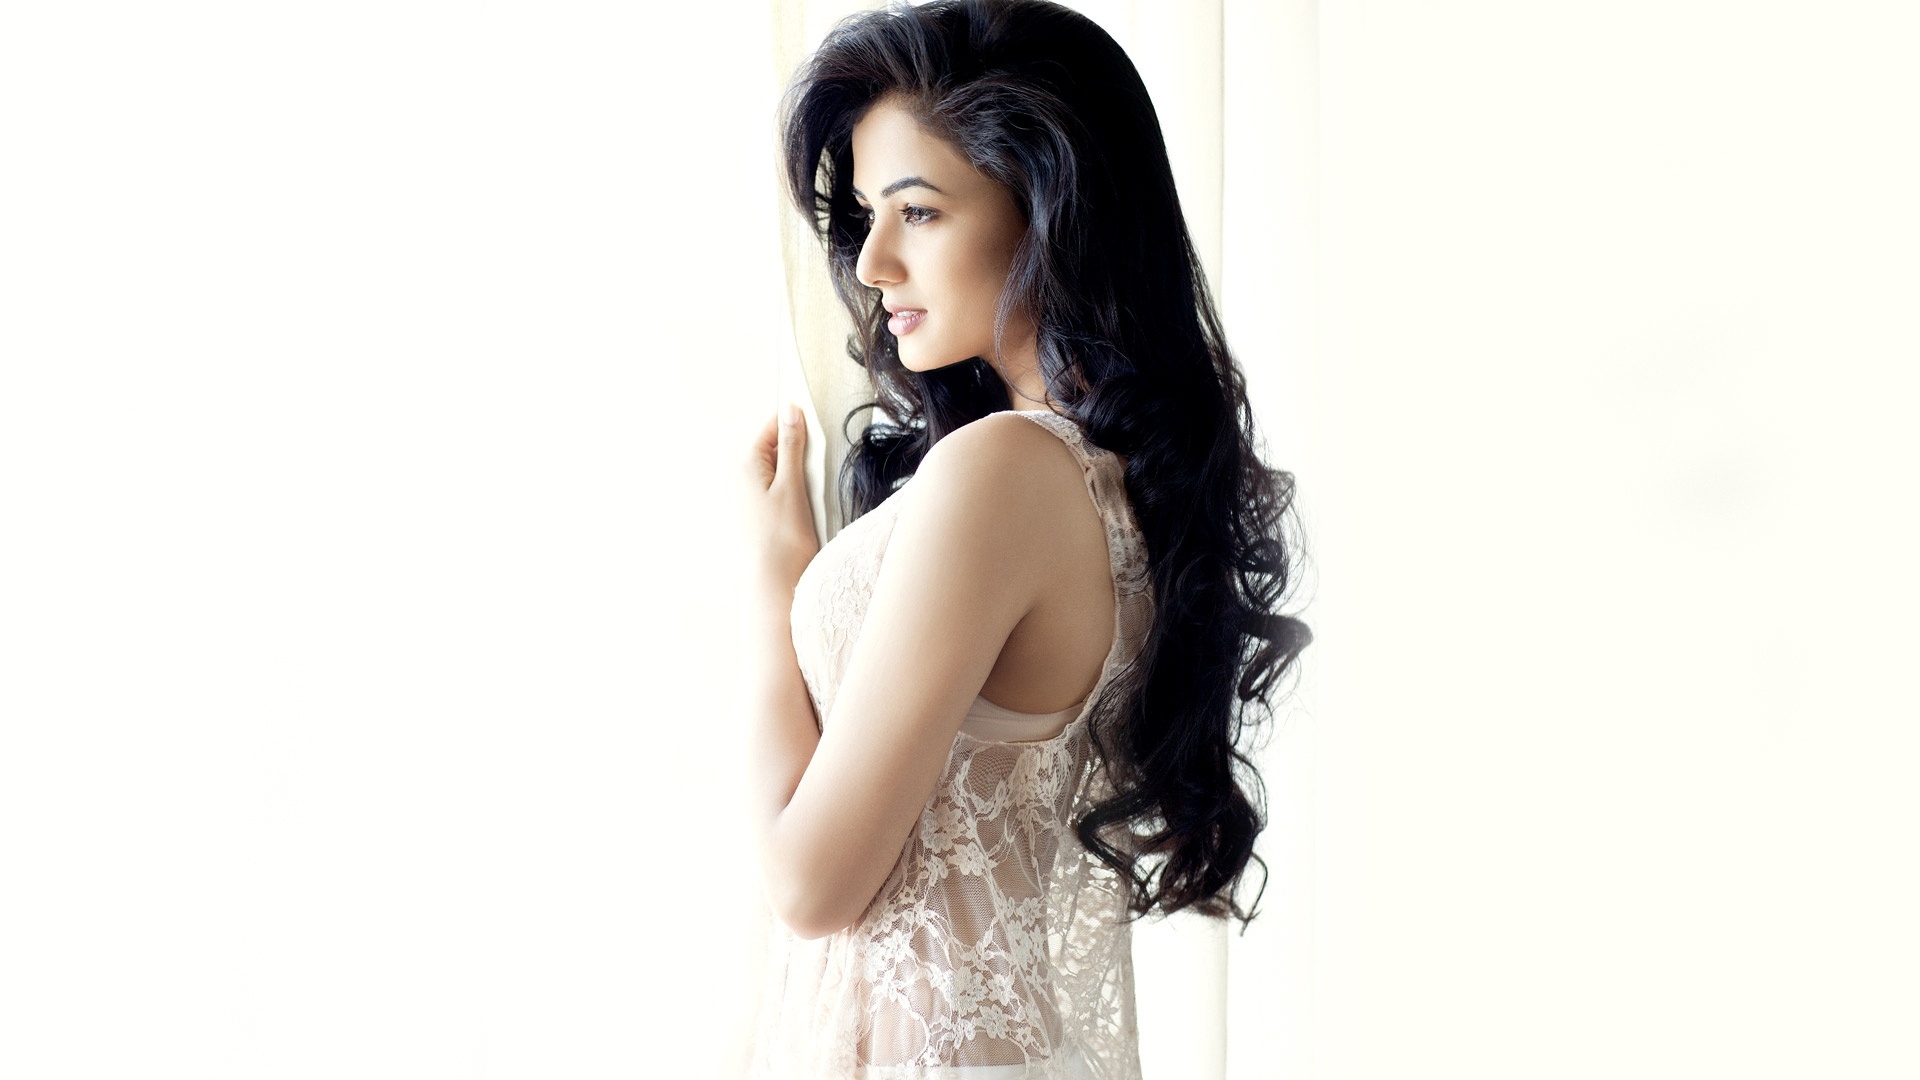 Actress Sonal Chauhan Wallpapers In Jpg Format For Free Download